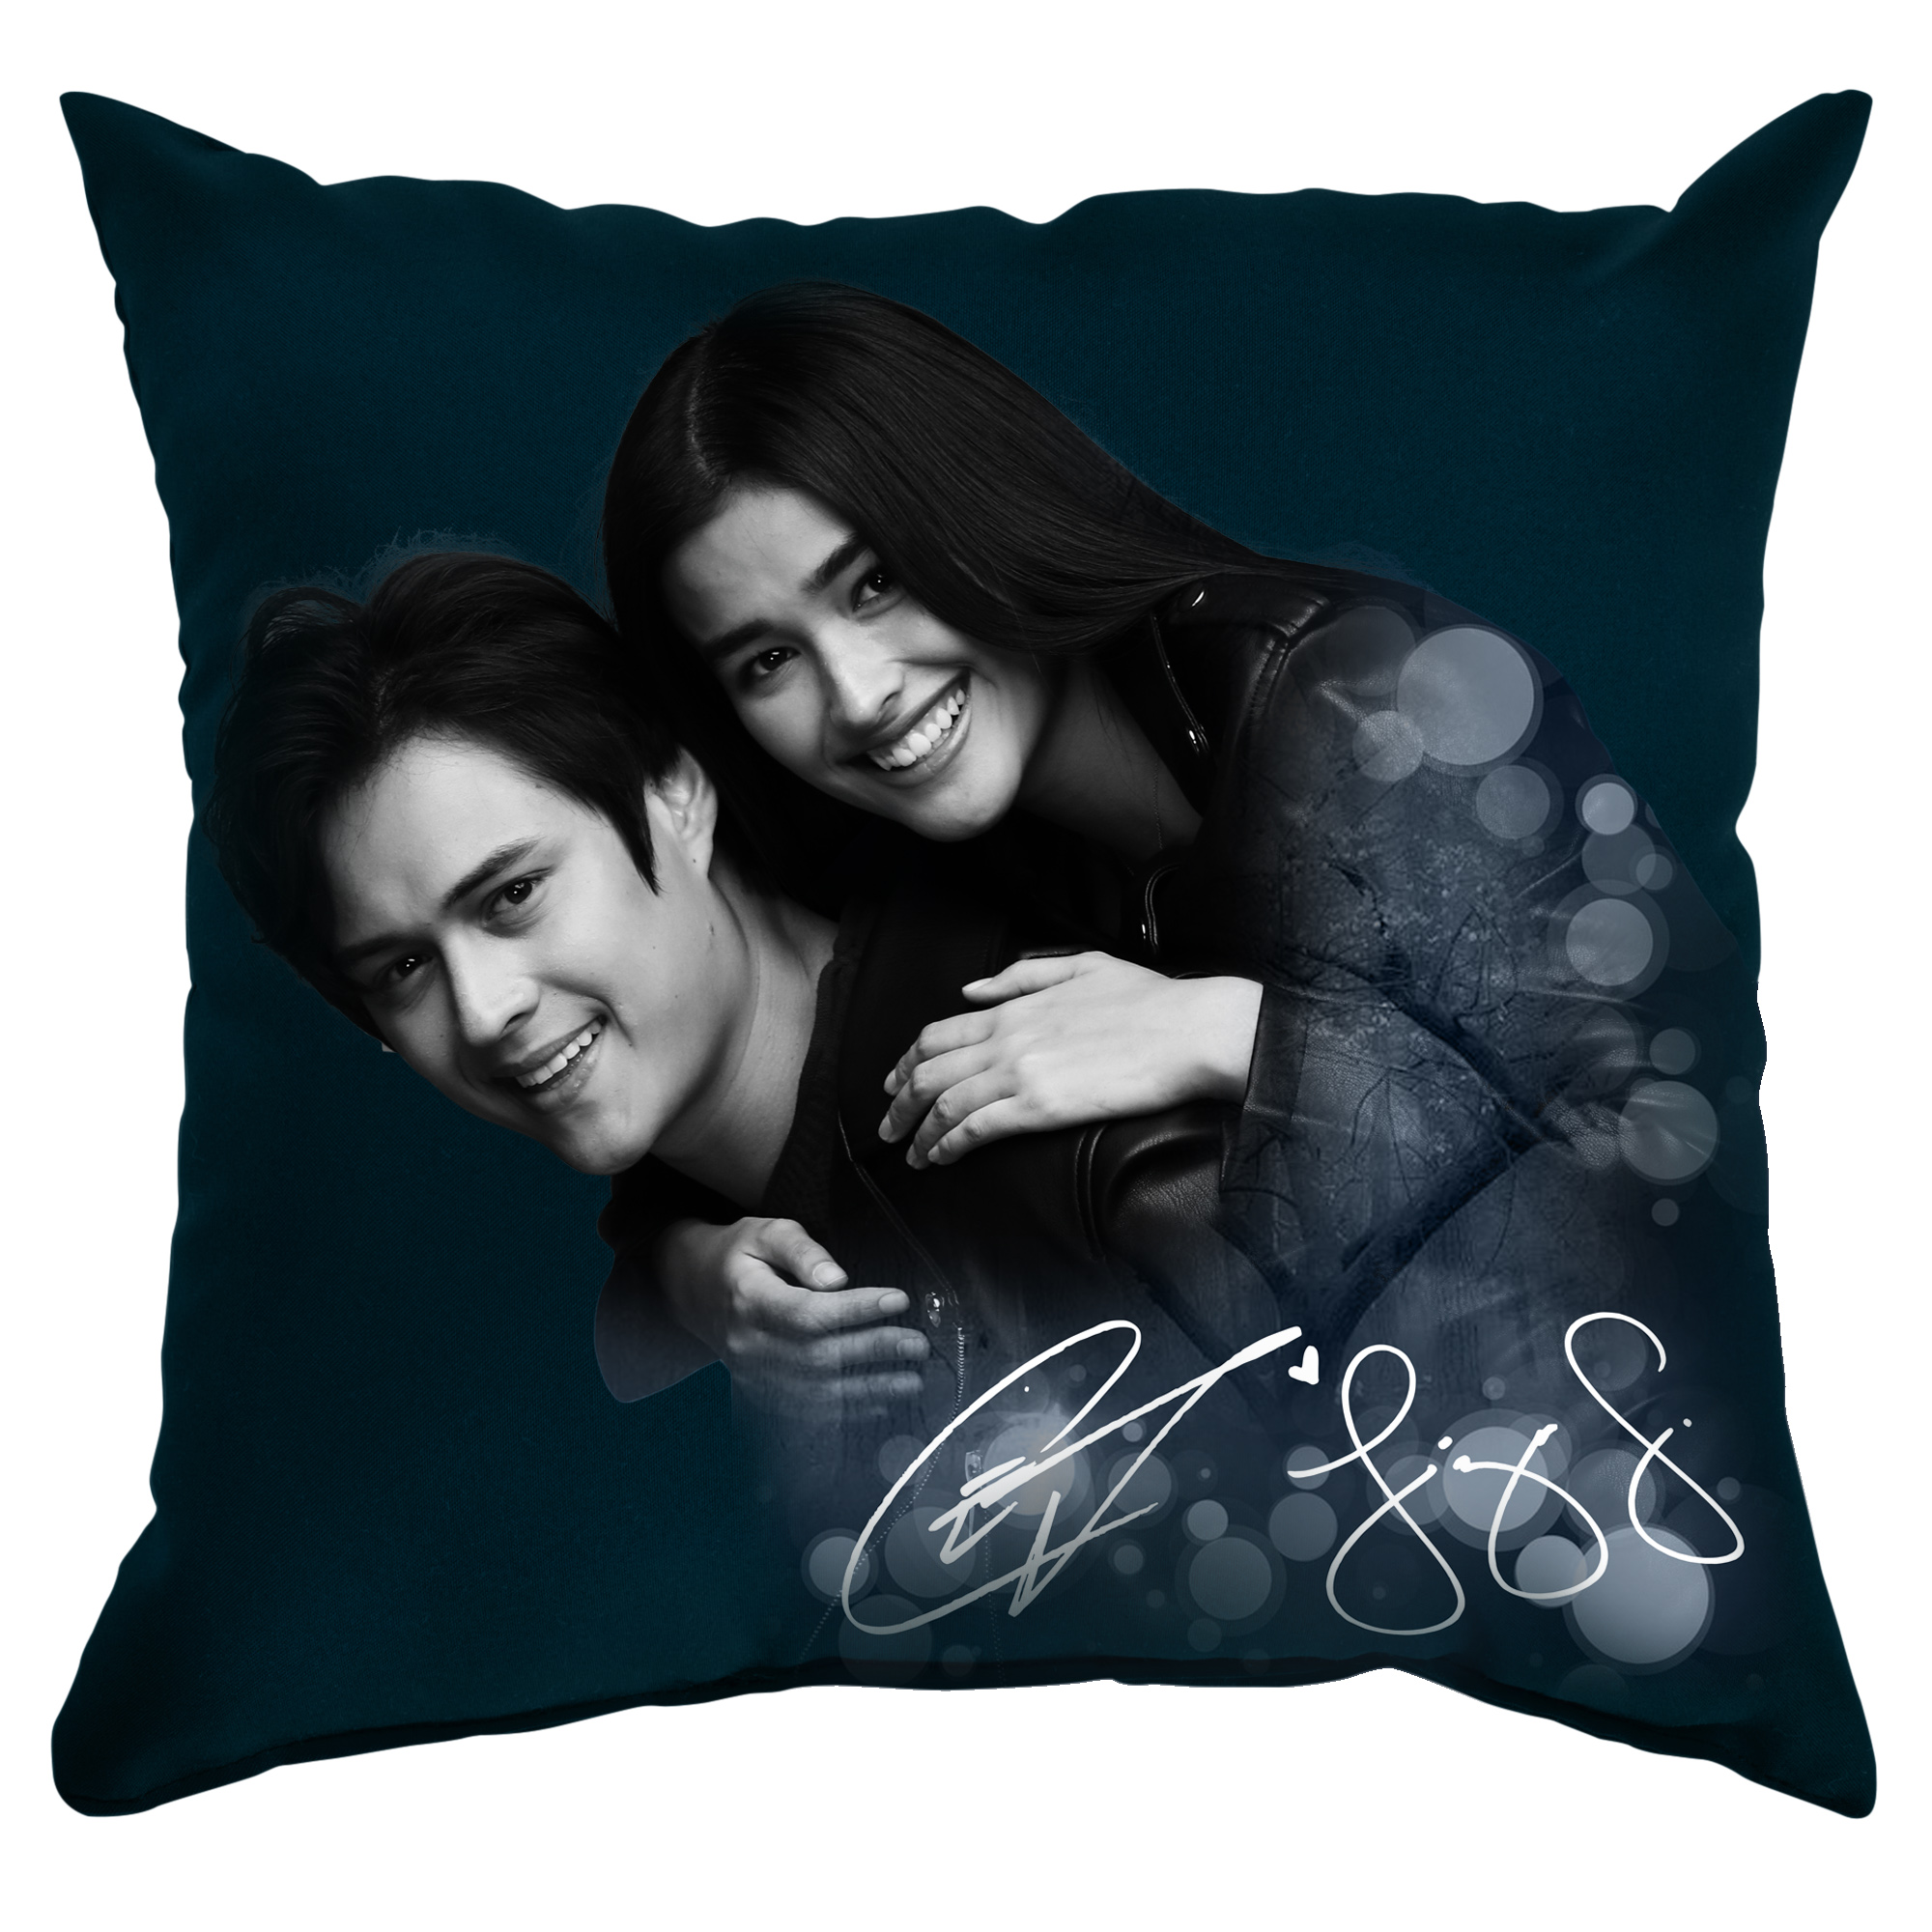 Lizquen Pillow